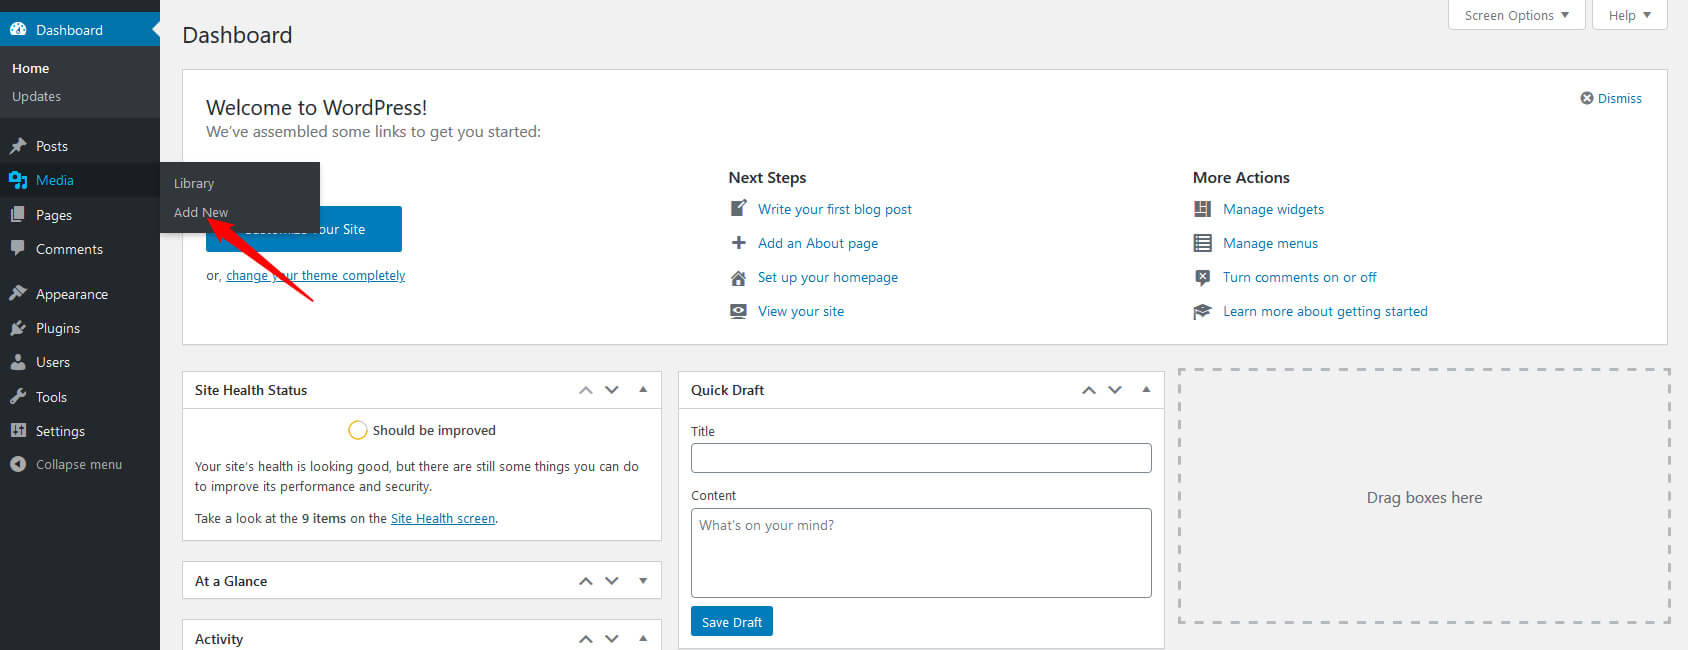 Add or Upload a Media File to WordPress media library